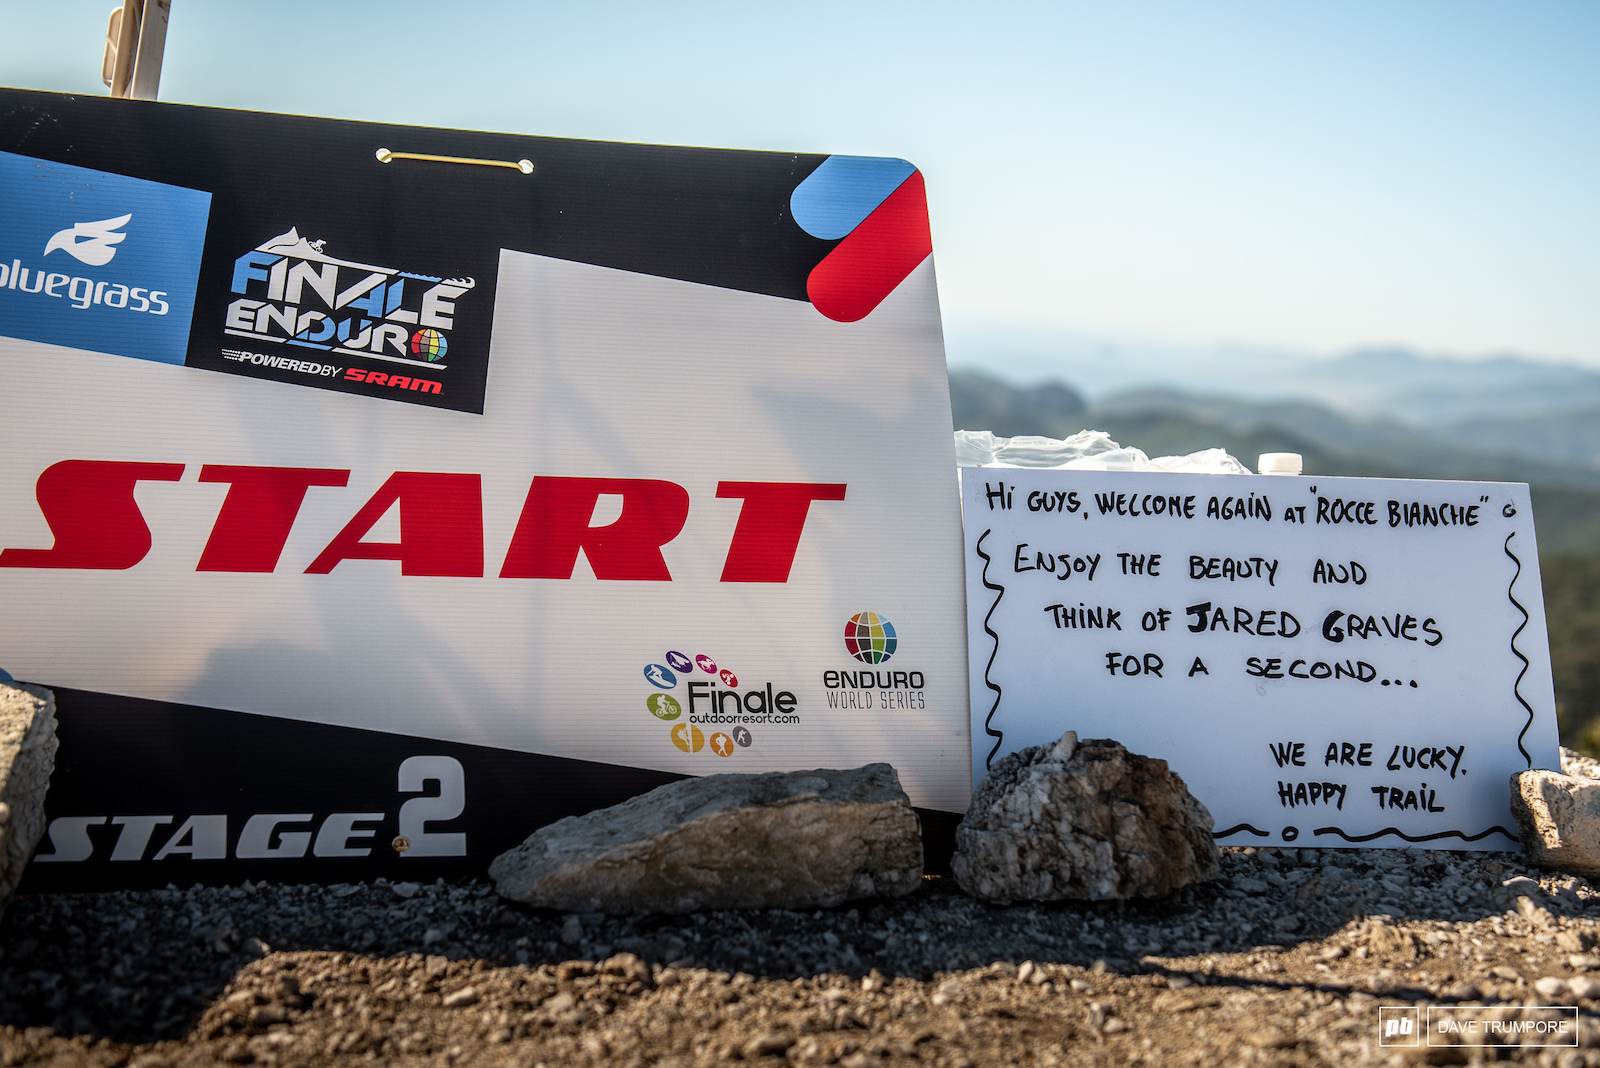 A great reminder about the important things as riders reach the top of the long climb to Stage 2.